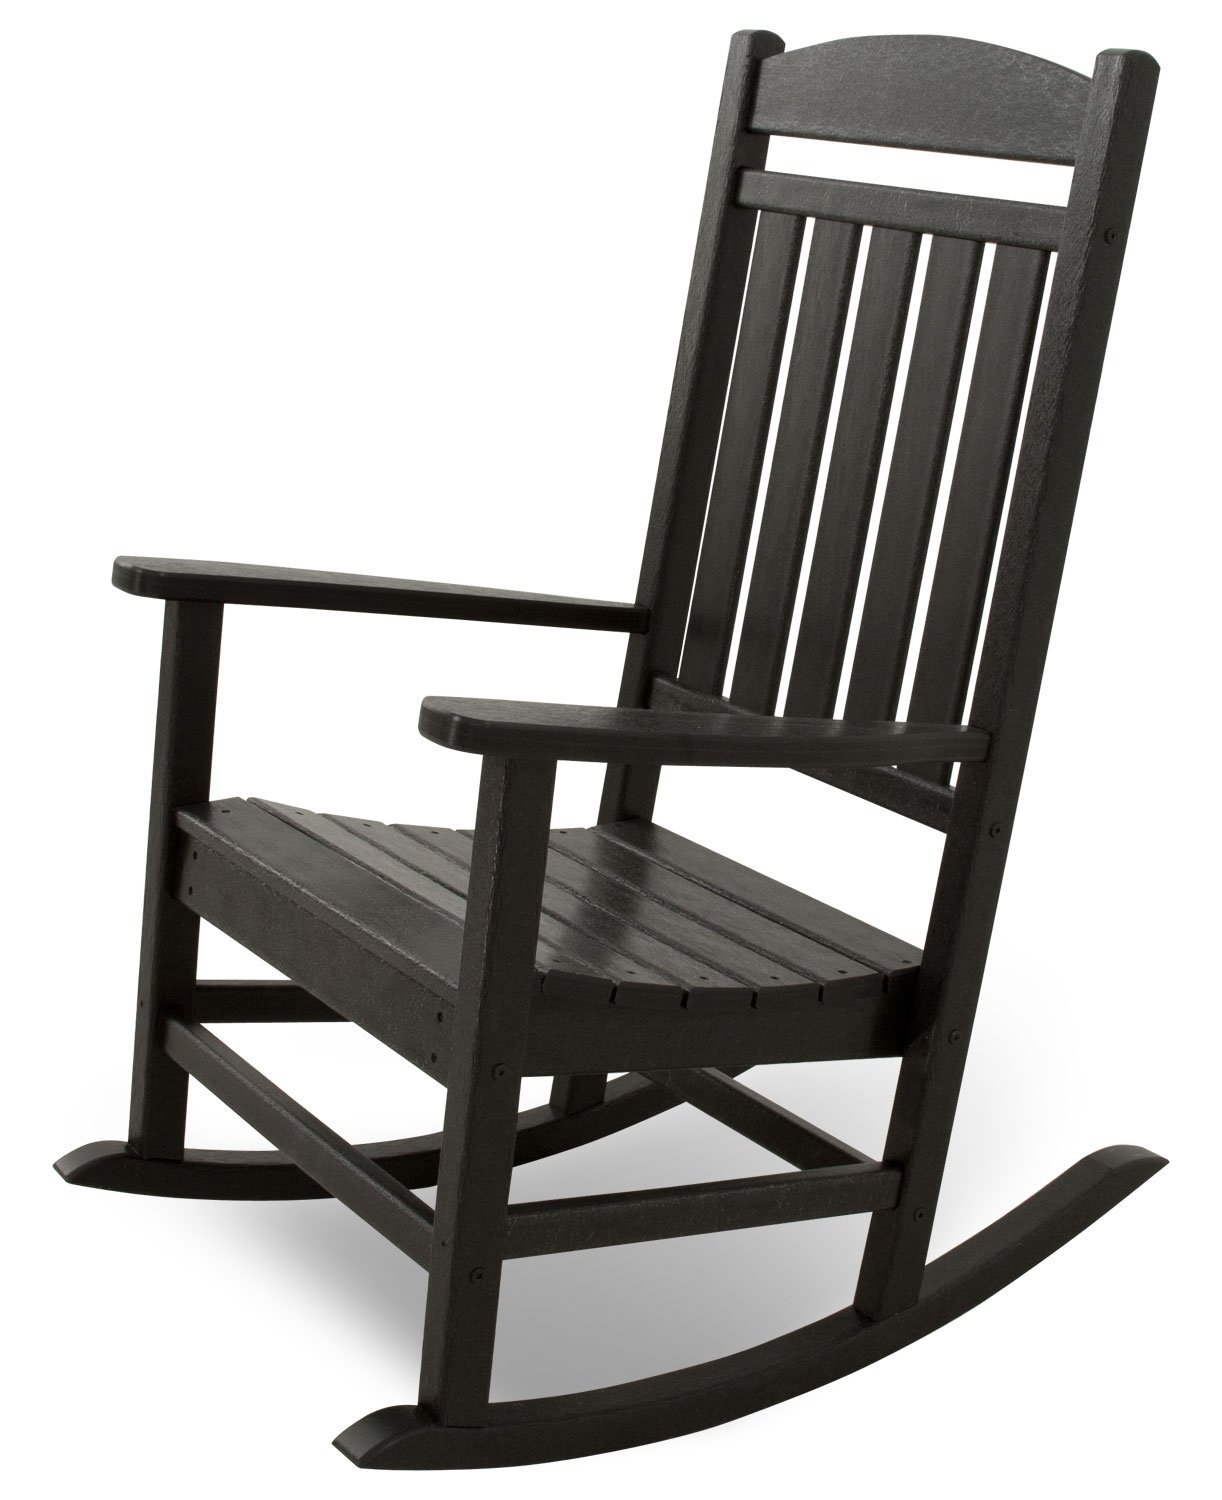 Chair | Best Quality Outdoor Rocking Chairs Outdoor Rocking Chairs For Vintage Outdoor Rocking Chairs (View 11 of 15)